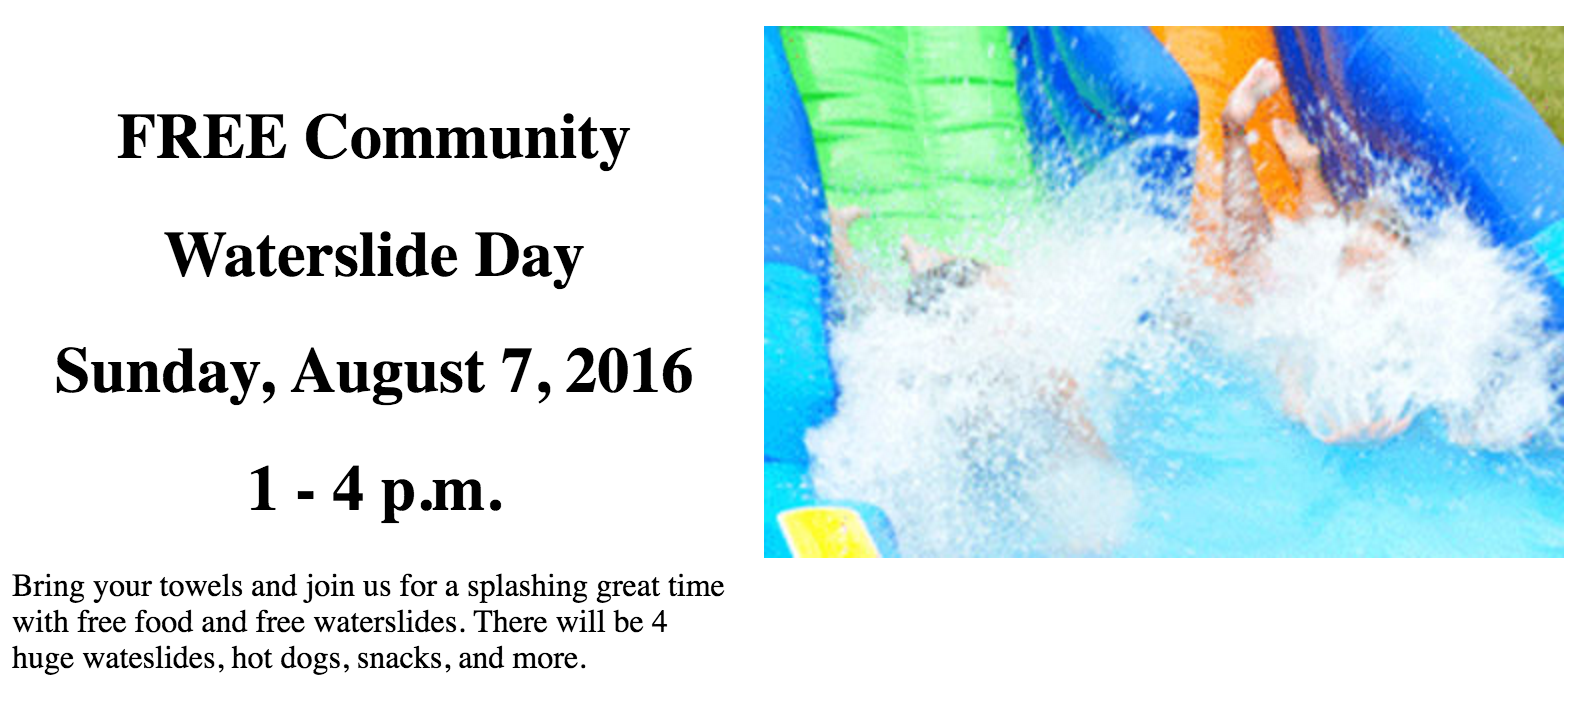 FREE Community Waterslide Day in Leola on August 7, 2016